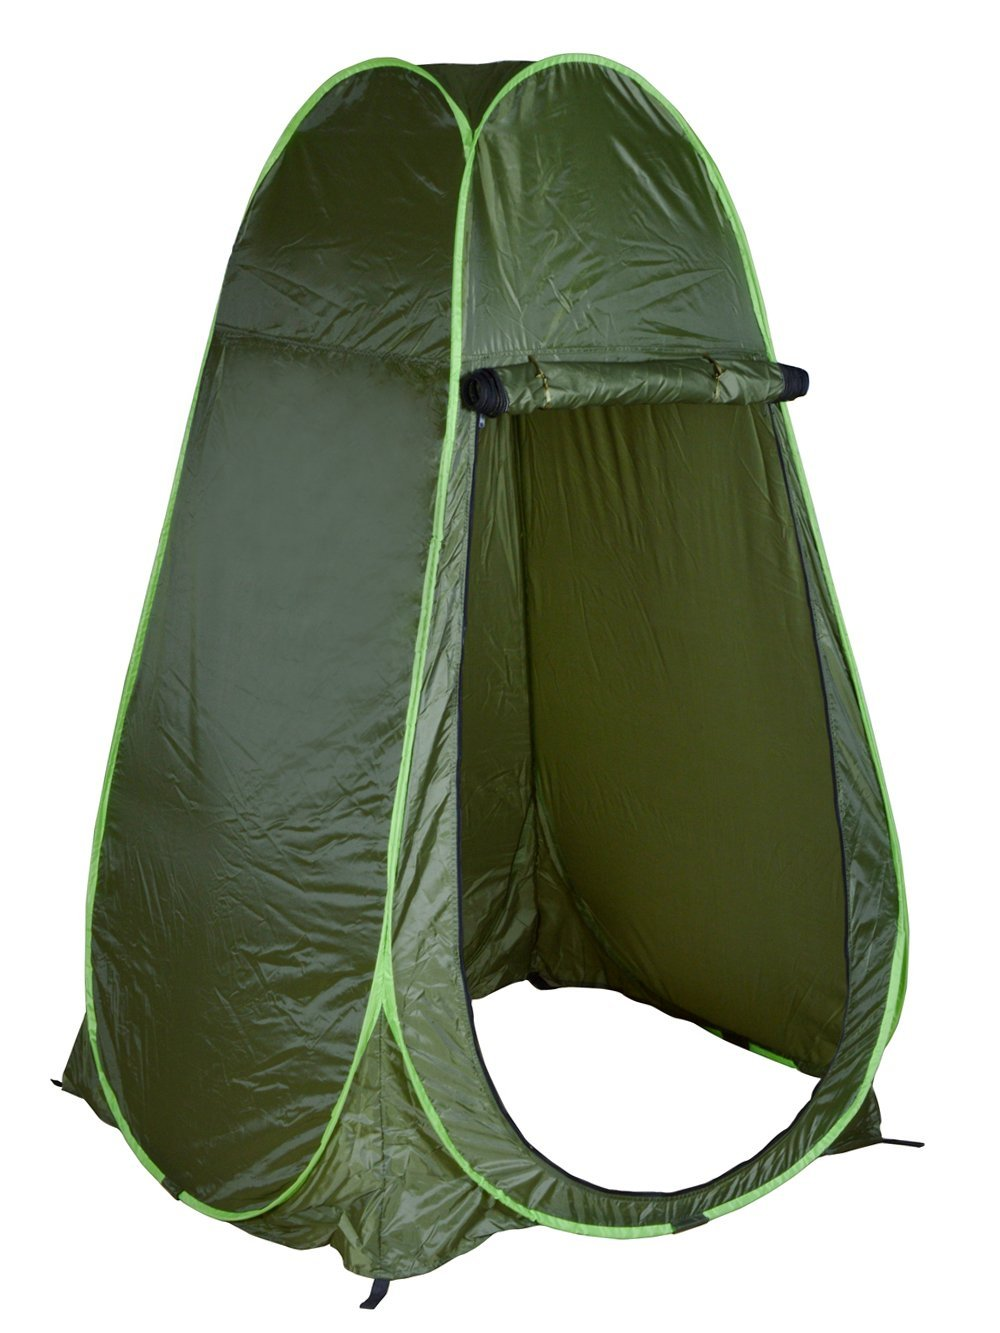 CALHOME Portable Green Outdoor Pop Up Tent Camping Shower Privacy Toilet Changing Room by CALHOME